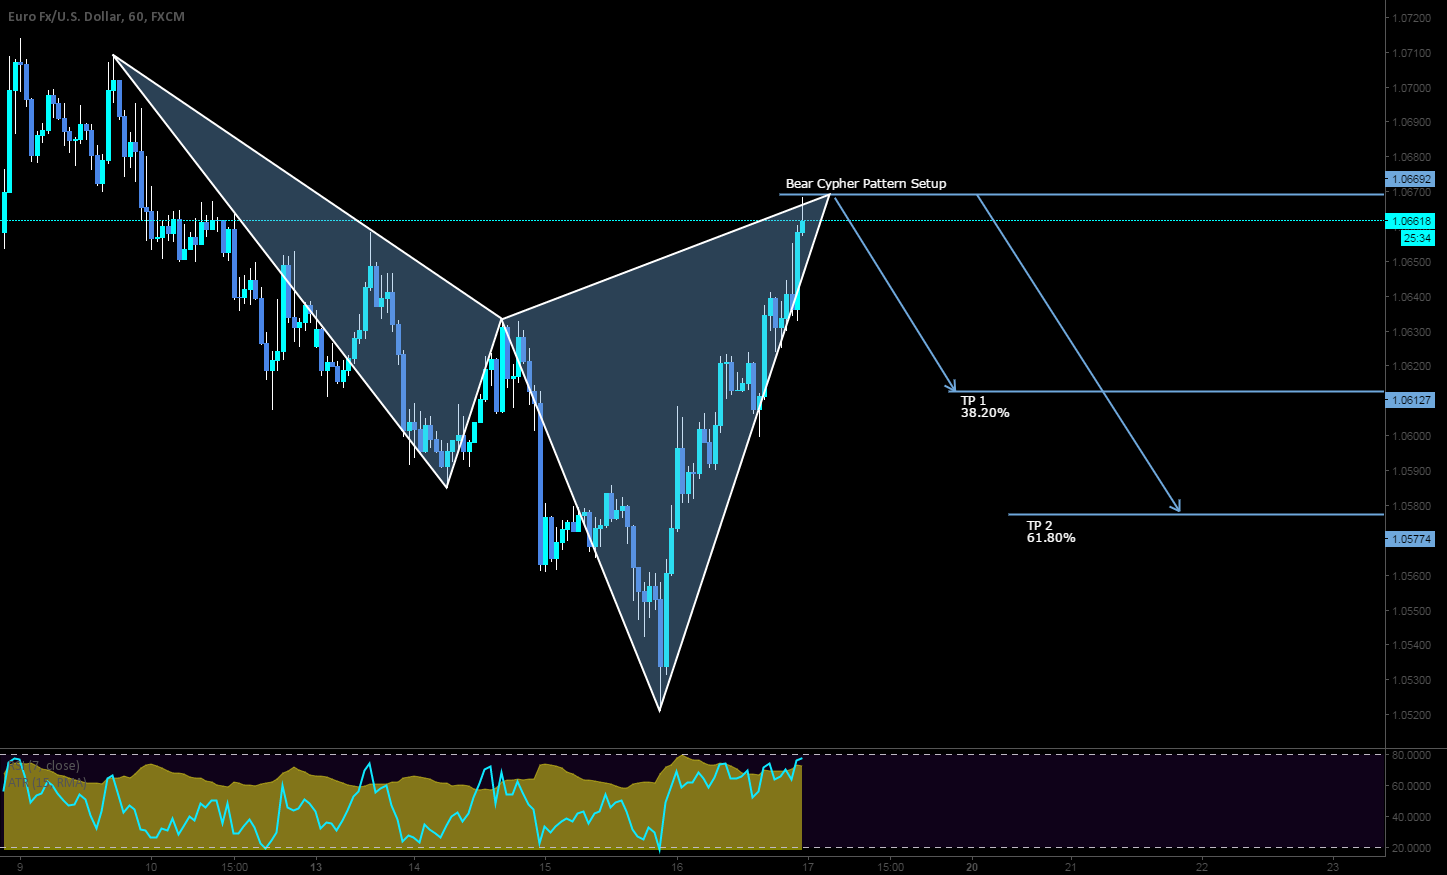 Short opportunity here on the EURUSD